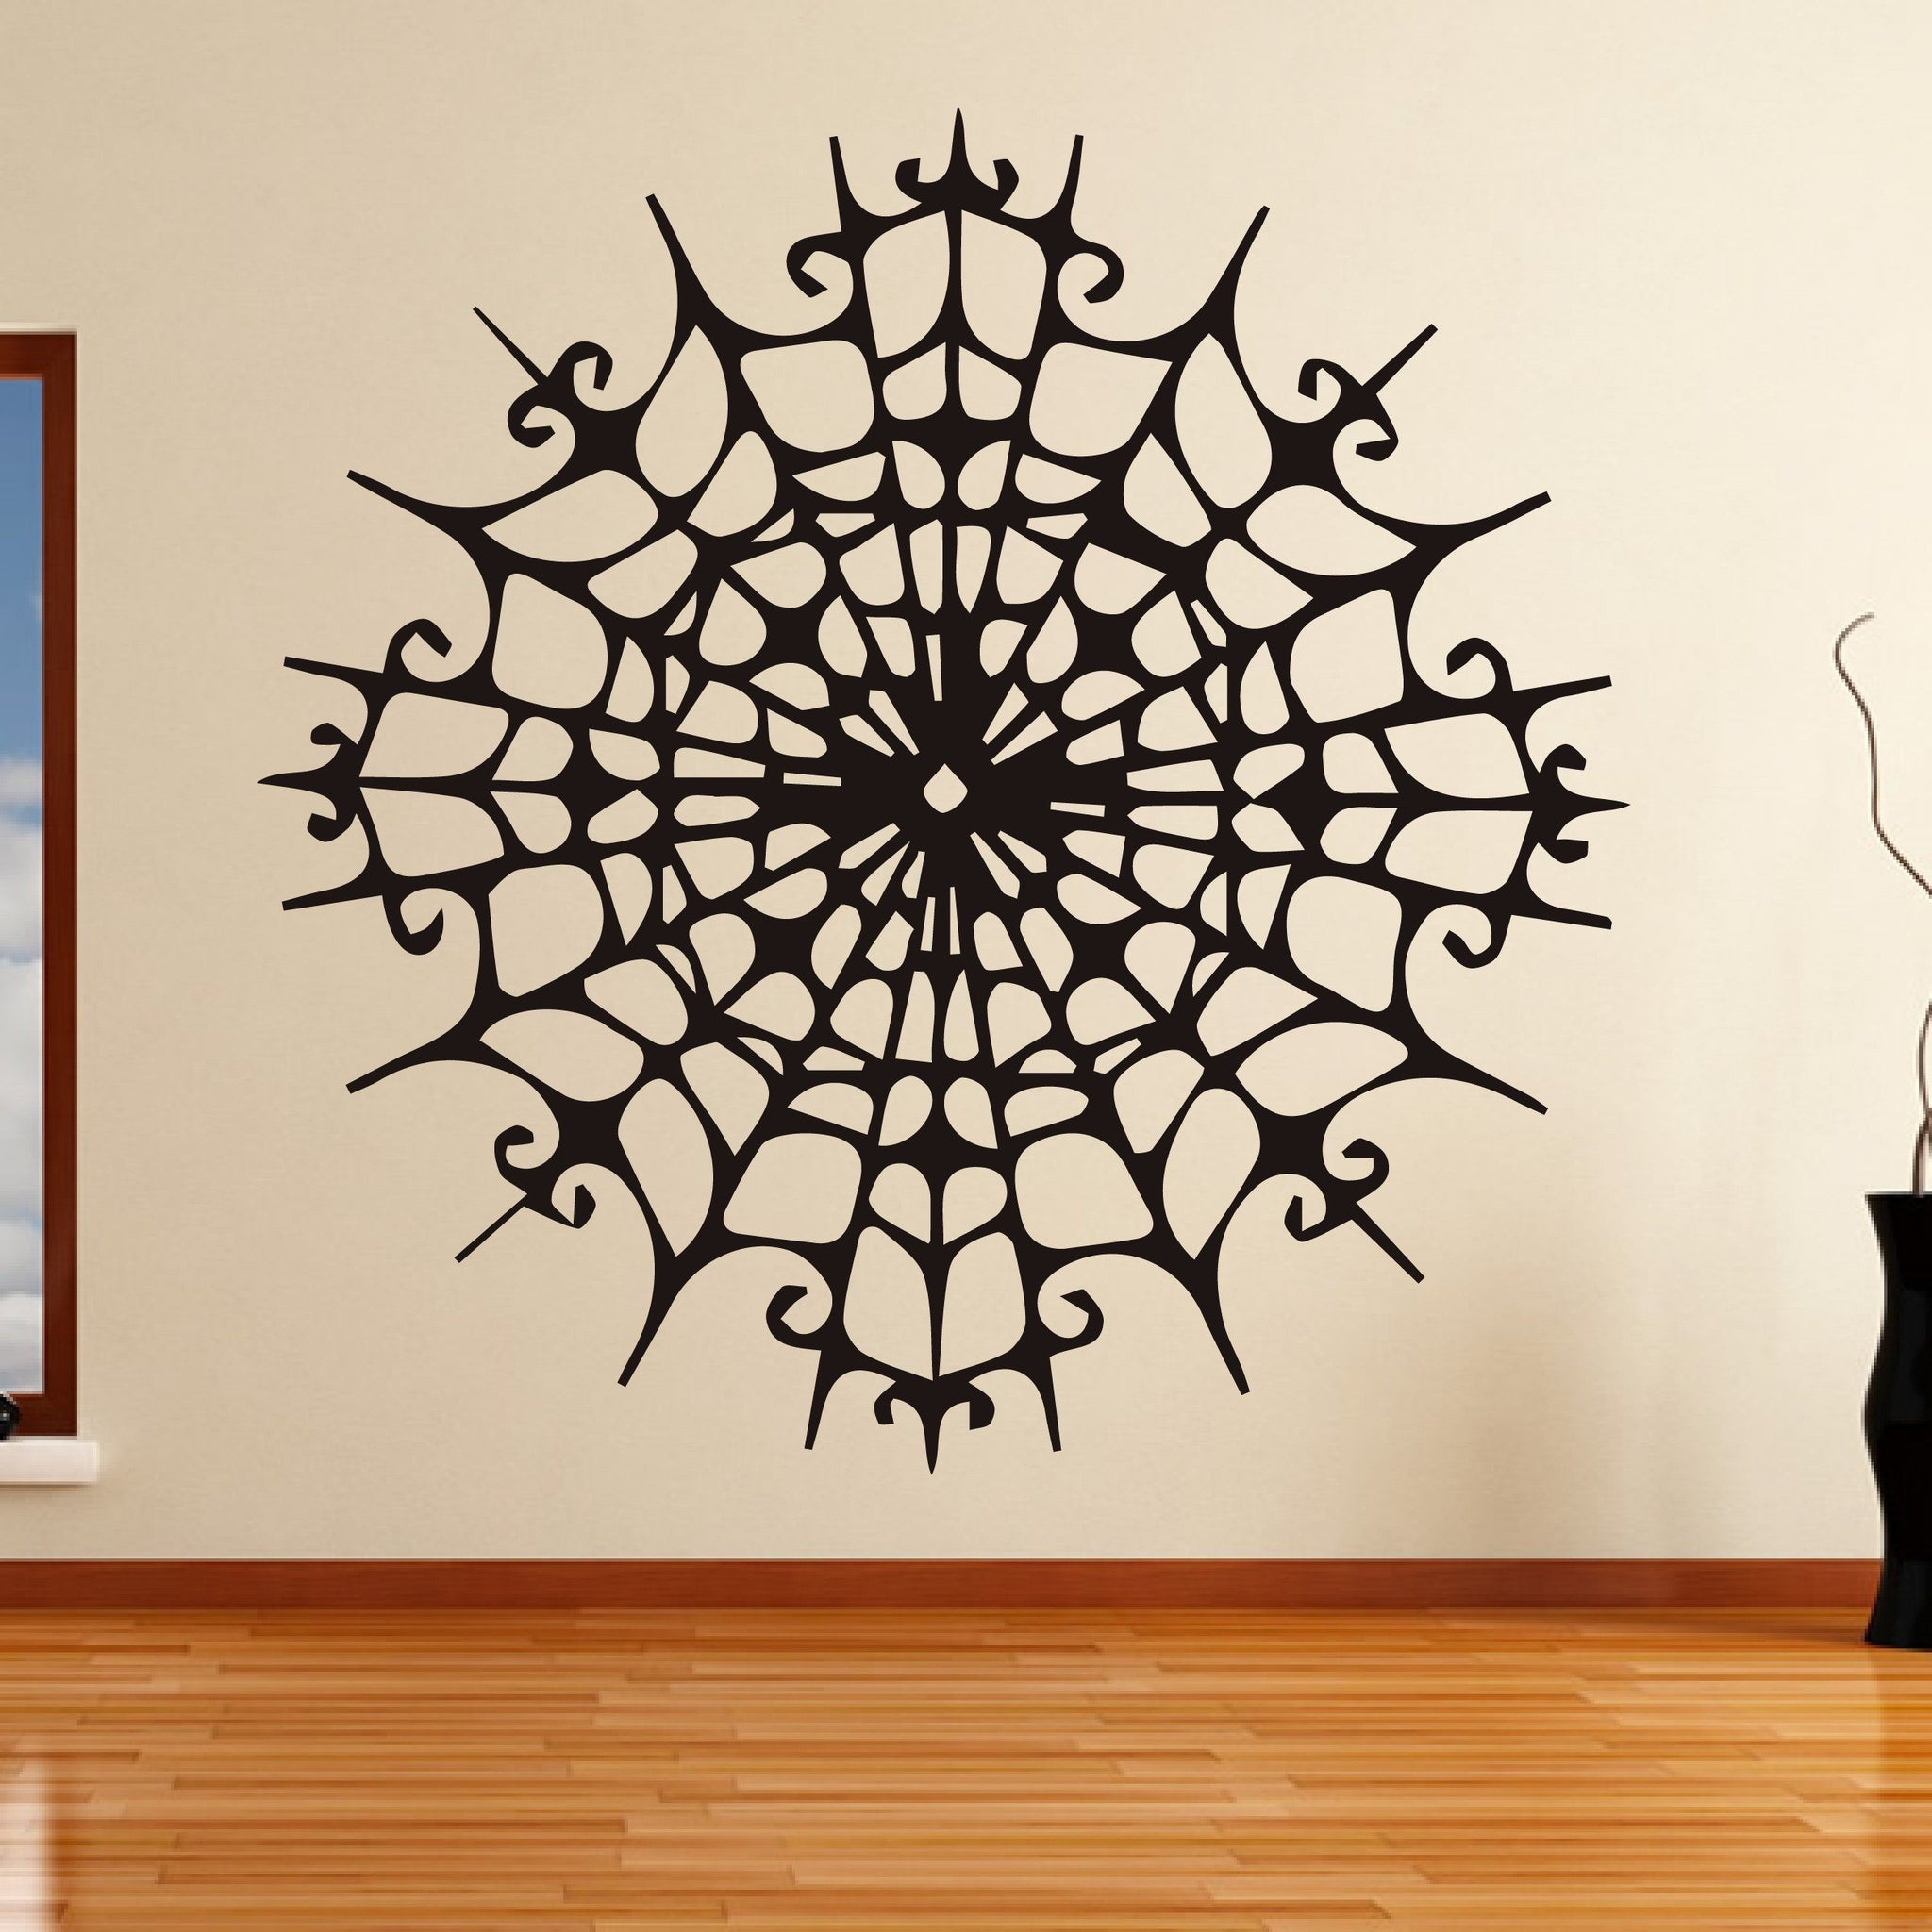 Creepy Spider Web Wall Art Sticker - Apex Stickers